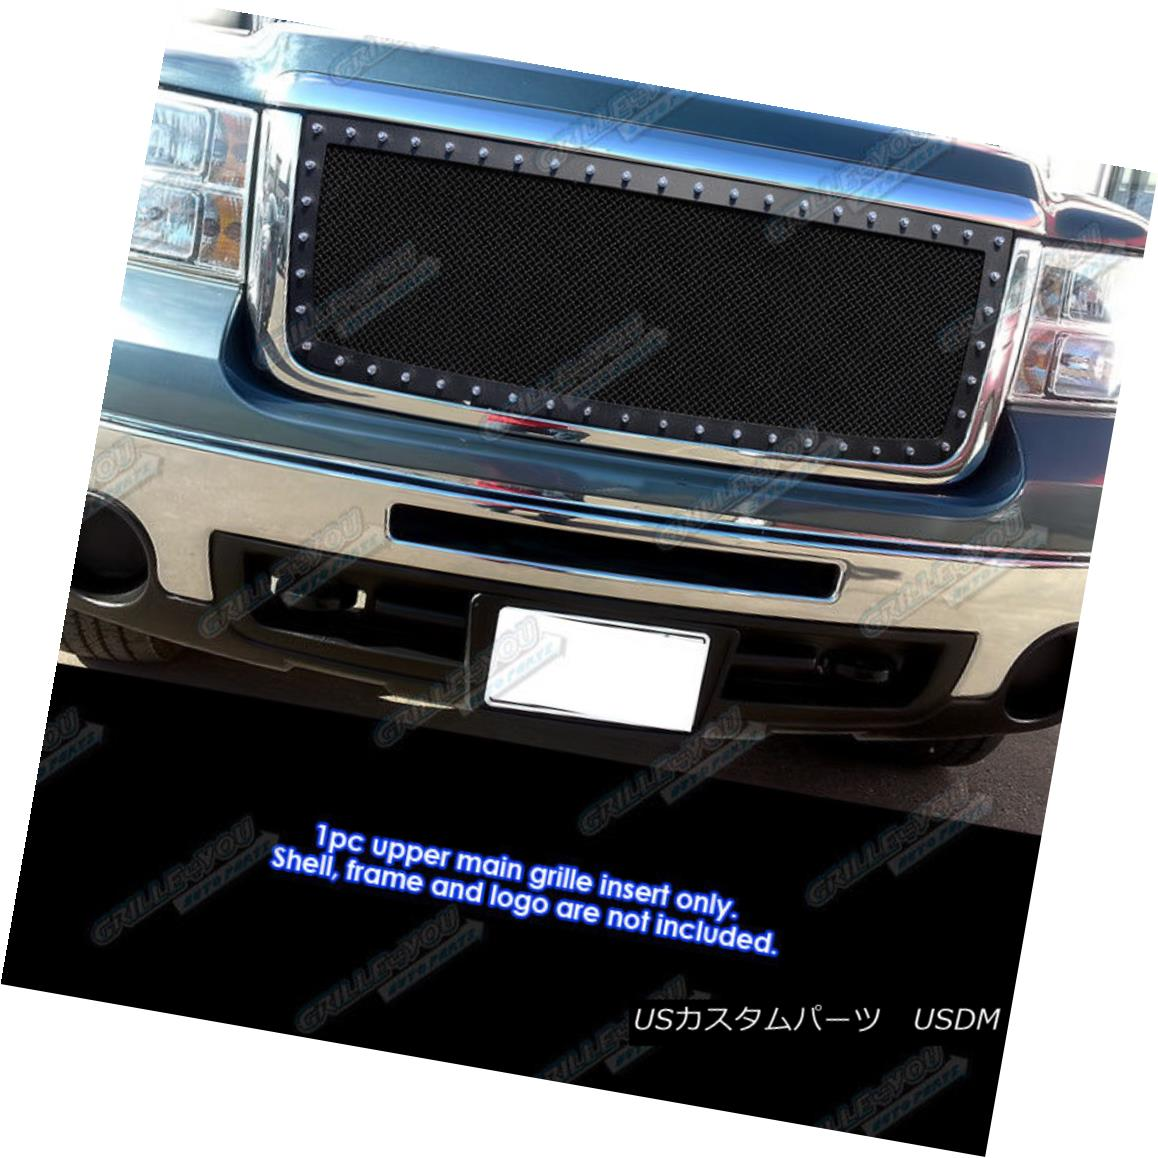 グリル For 2007-2010 GMC Sierra 2500 HD/ 3500 HD Stainless Black Rivet Mesh Grille 2007-2010 GMC Sierra 2500 HD / 3500 HDステンレスブラックリベットメッシュグリル